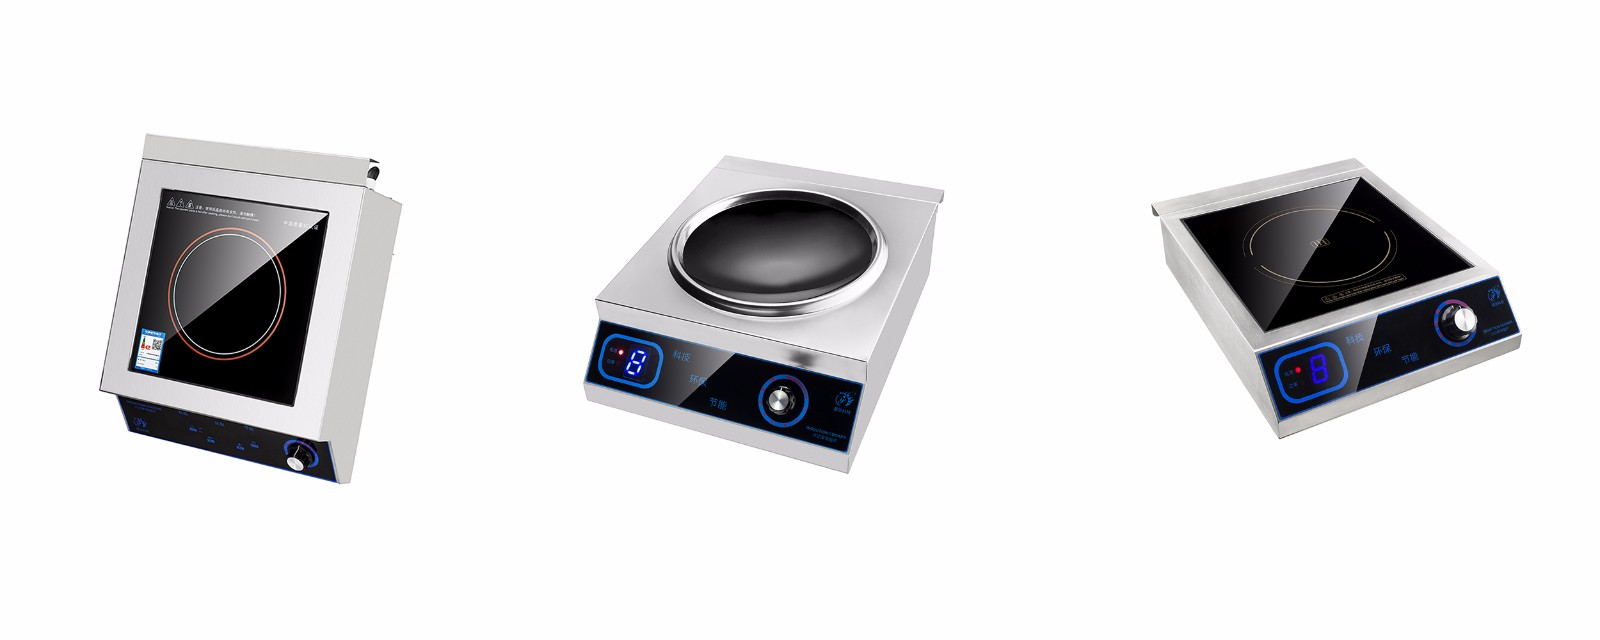 New Design 5000 Watts Commercial Induction Cooker For Frying - Buy Stand For Induction Cooker,Commercial Induction Cooker-3